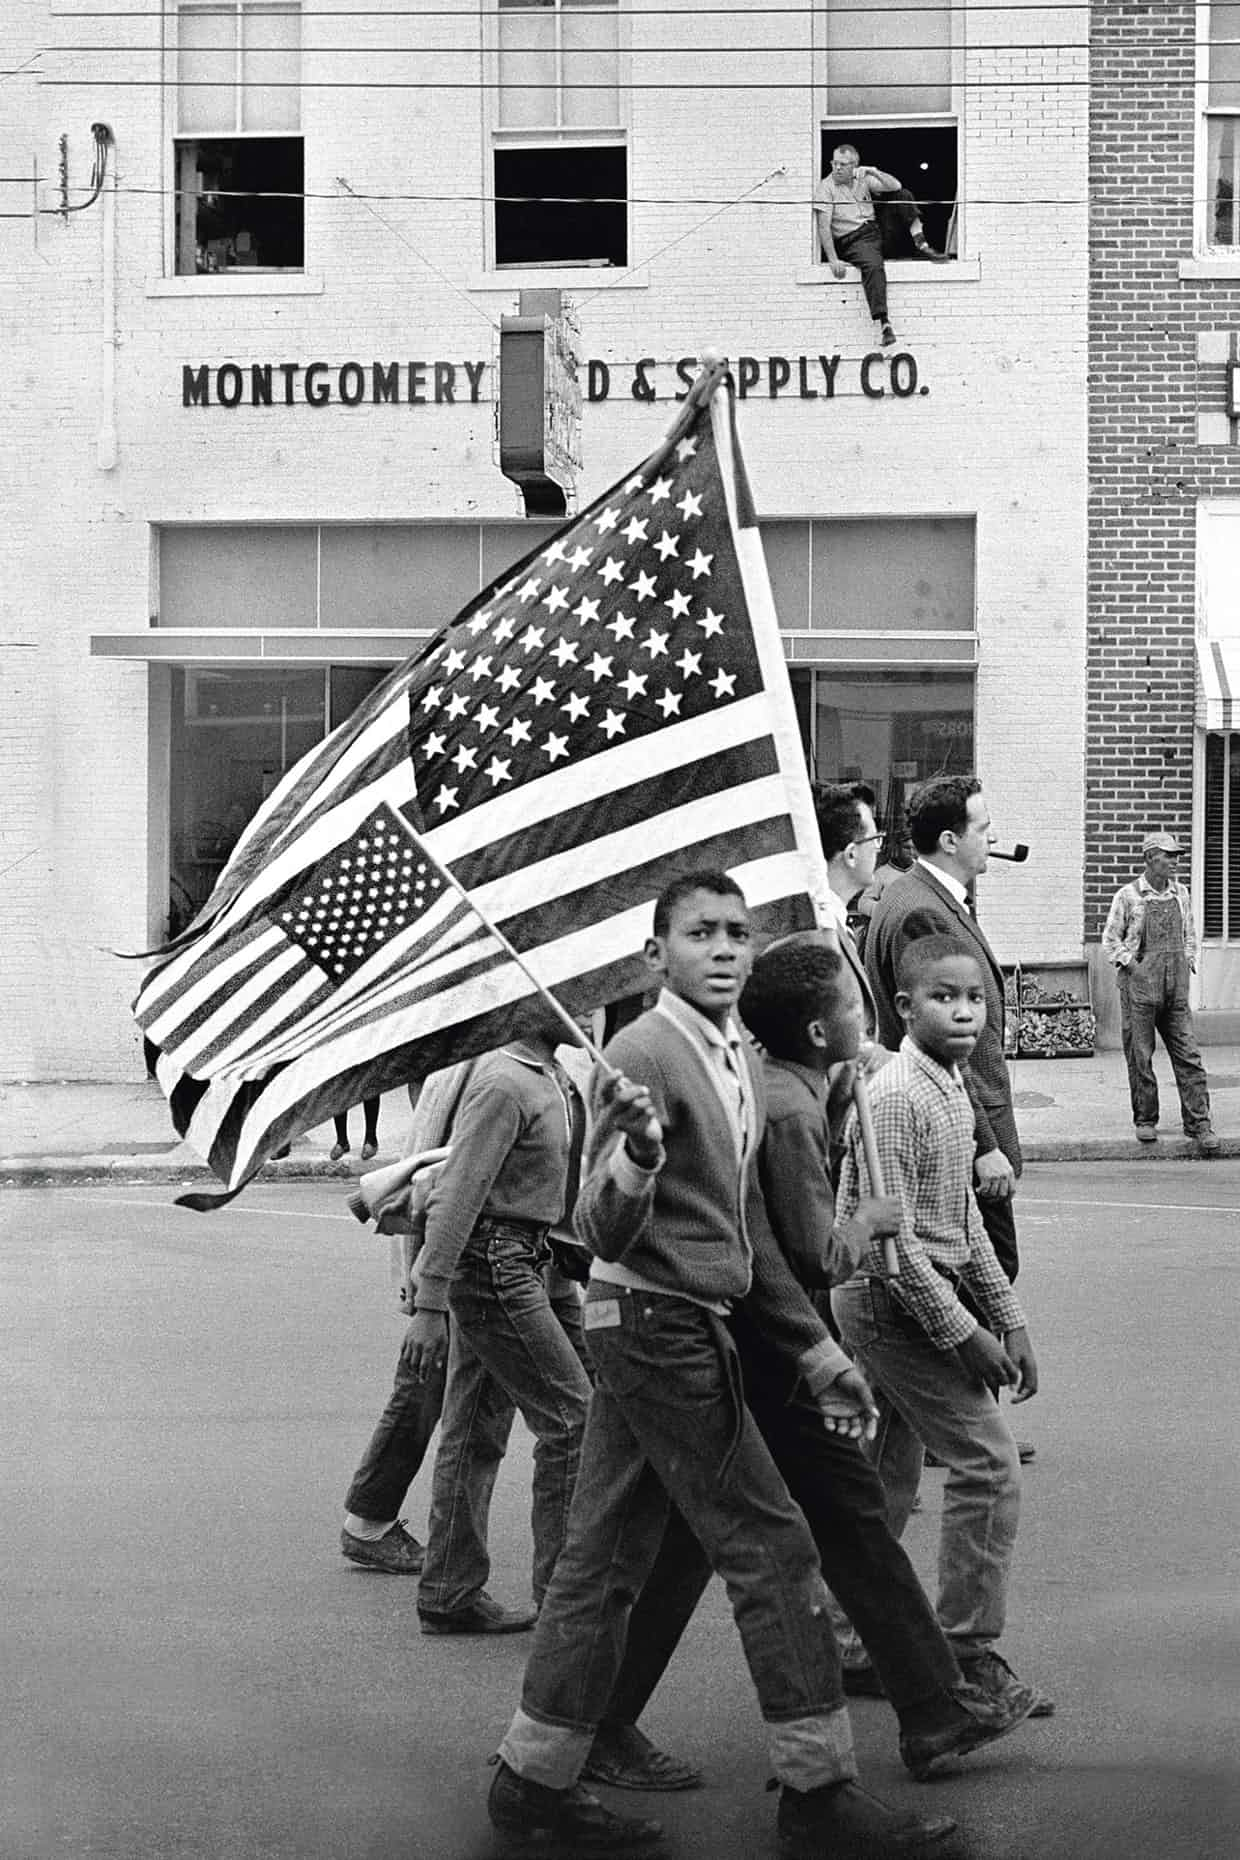 Protesters march from Selma in 1965. Photograph: Stephen F Somerstein/Getty